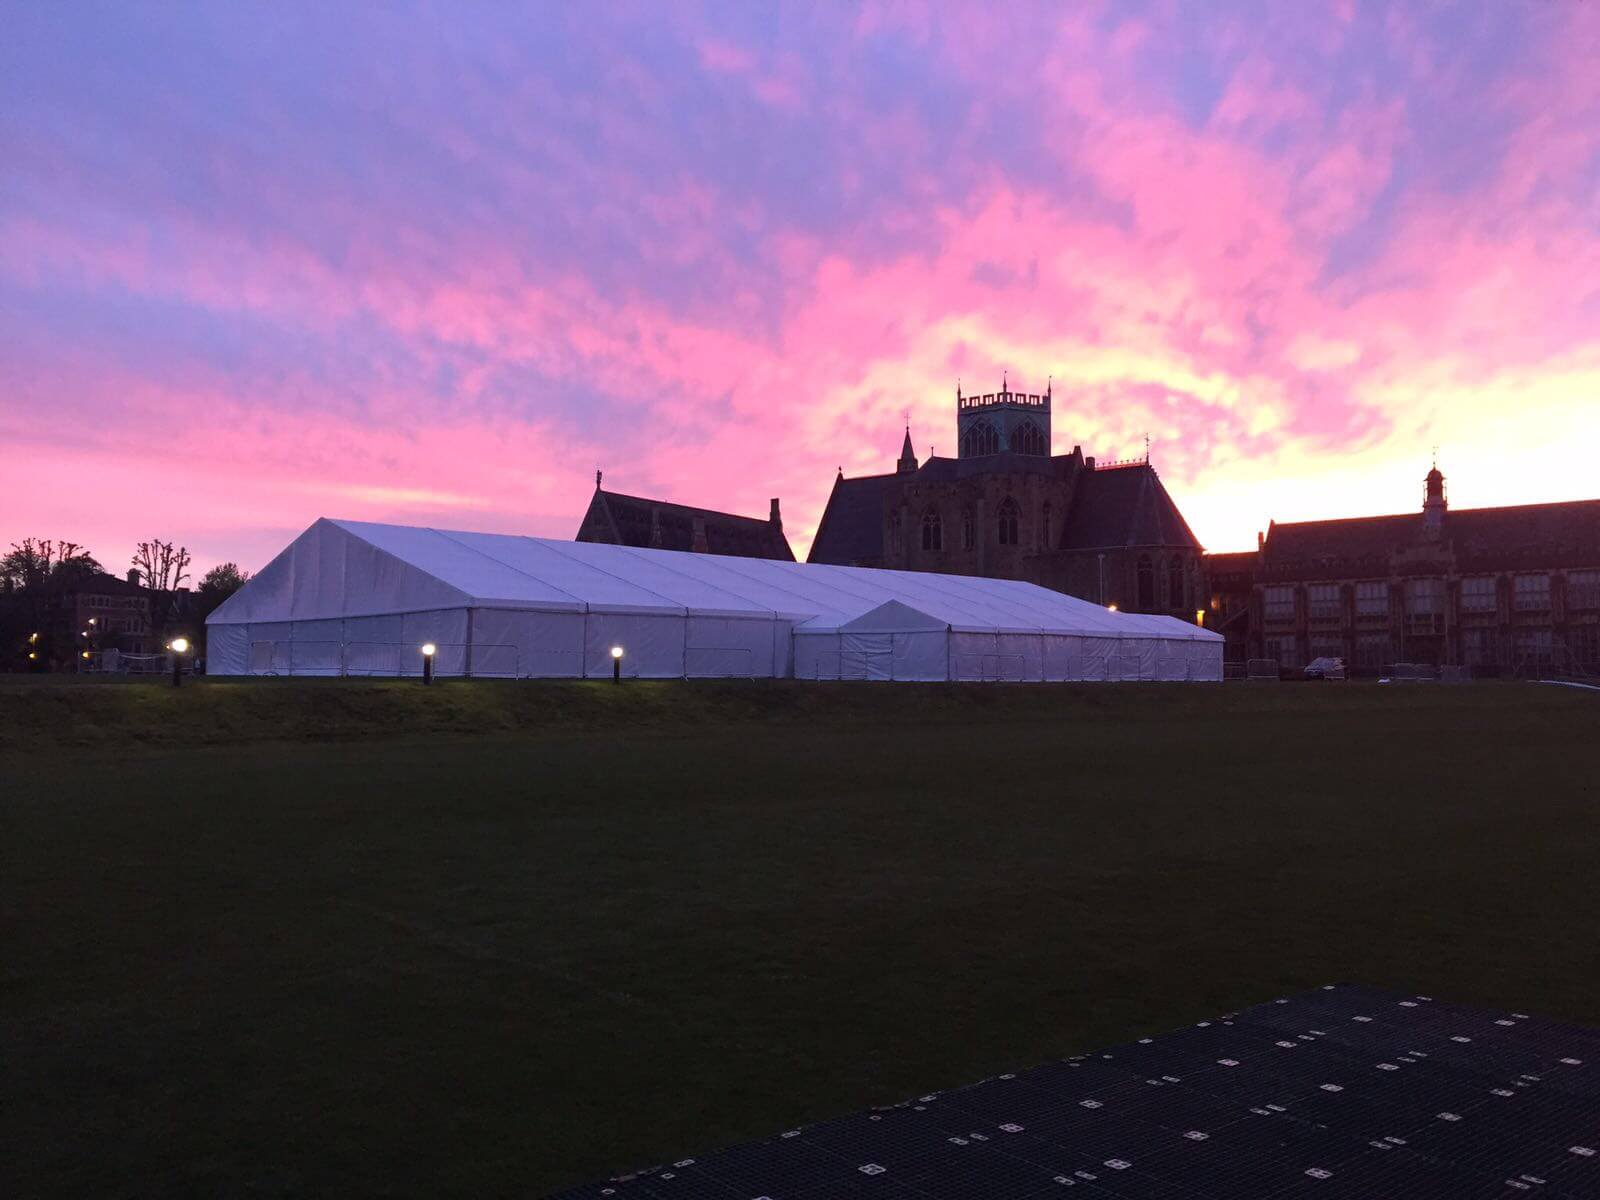 The 25m x 50m clearspan marquee looking stunning in the evening dusk